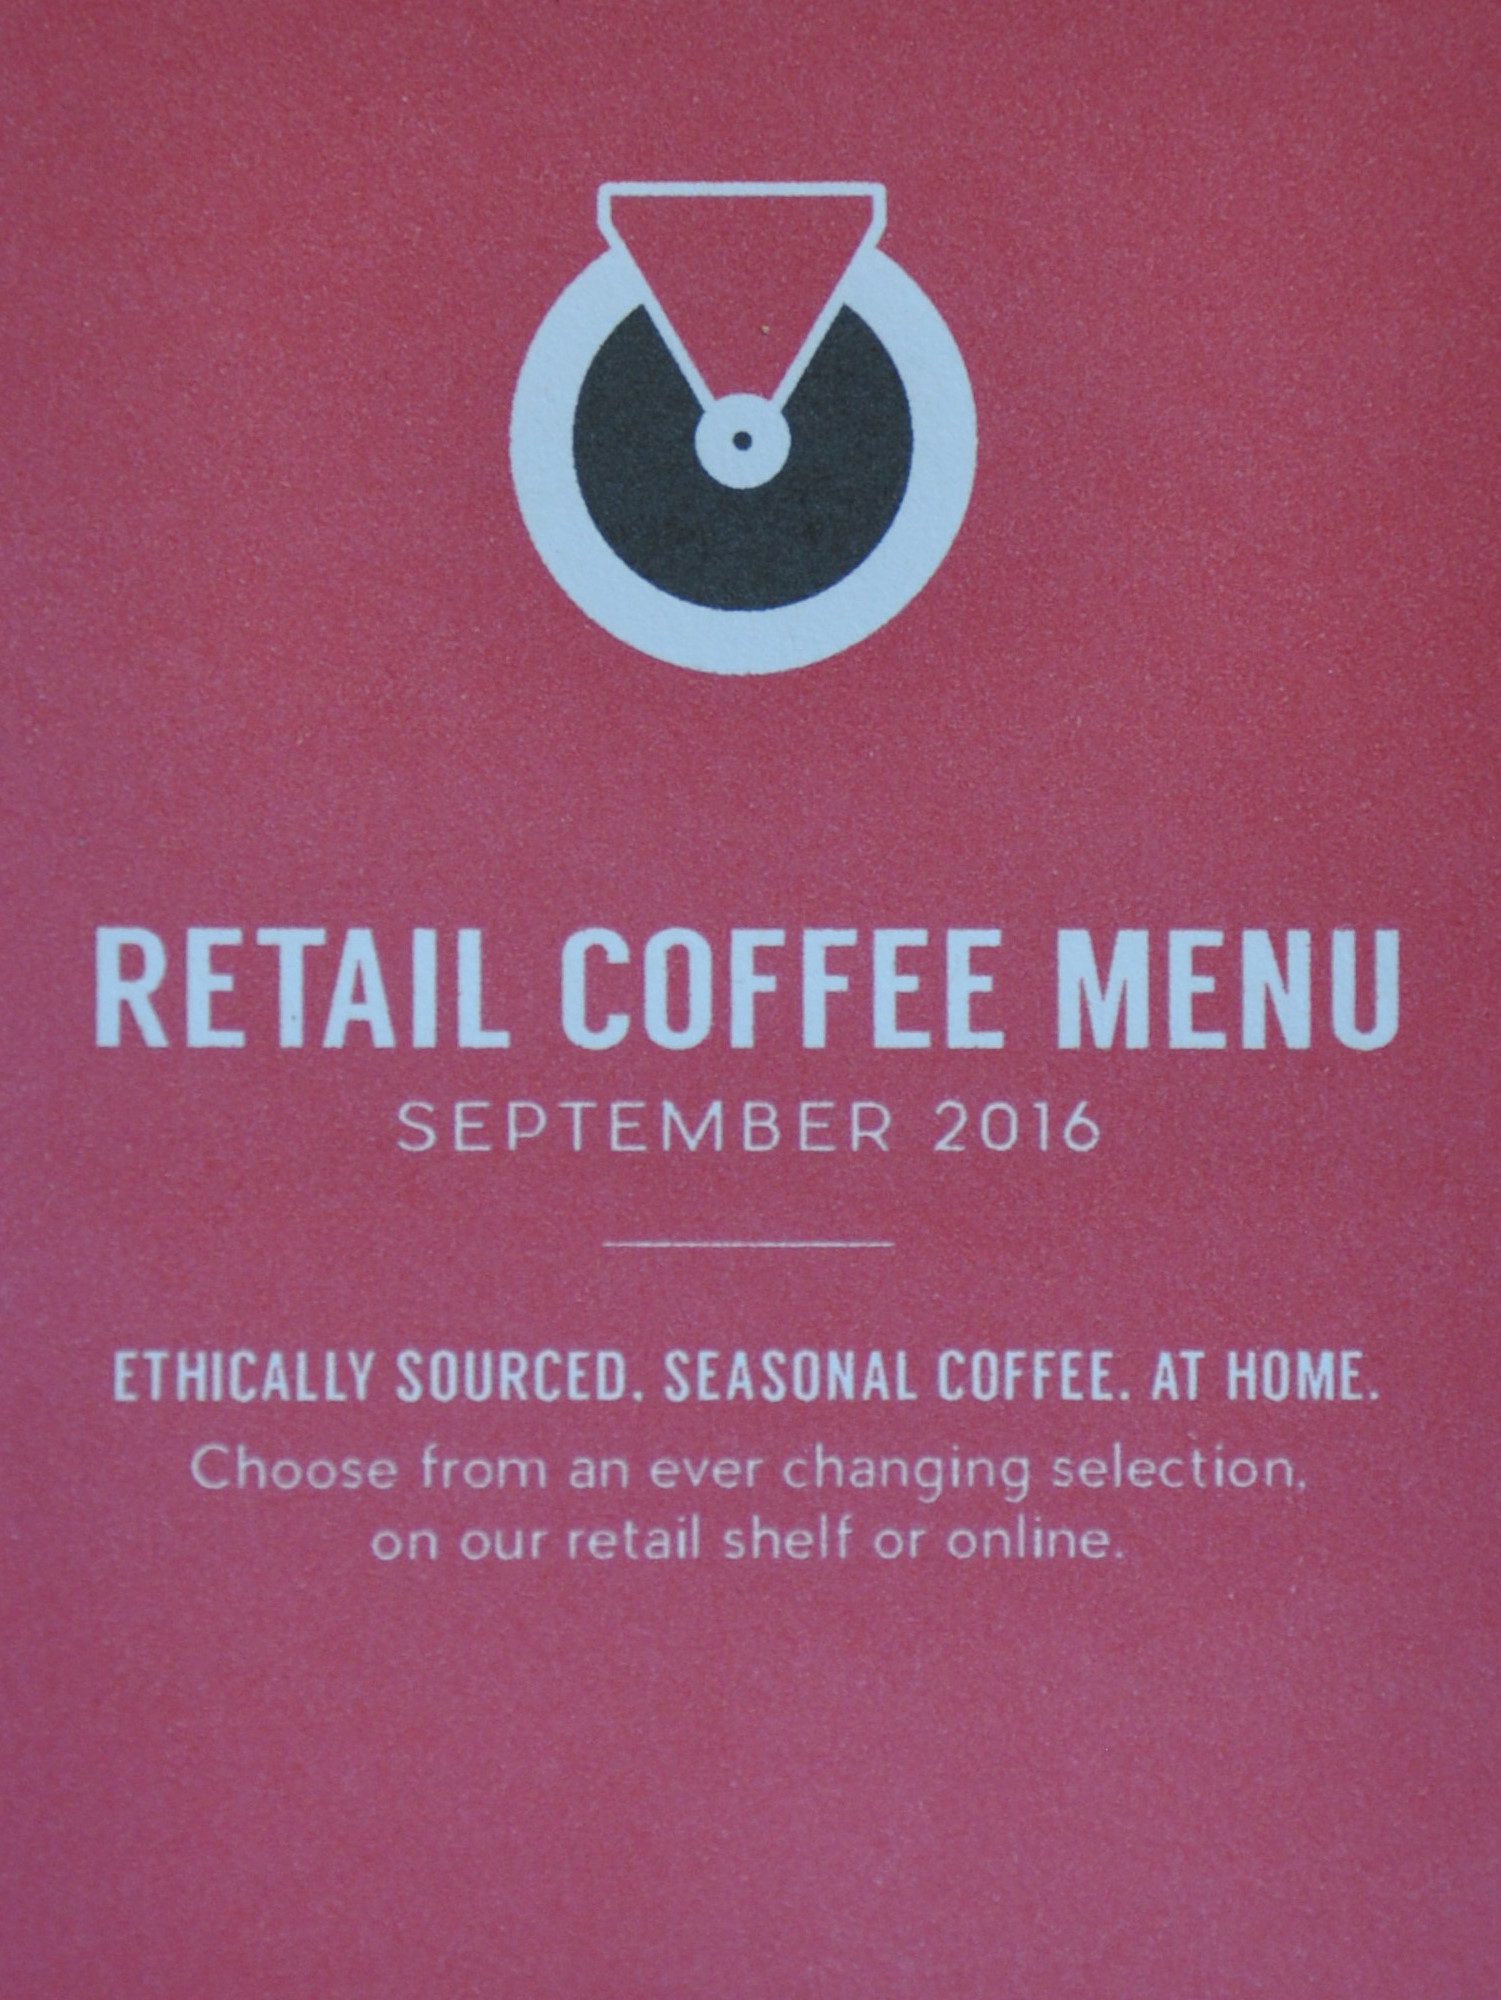 The front of the Retail Coffee Menu (September 2016) from Hot Numbers cafe/roastery on Trumpington Street, Cambridge.